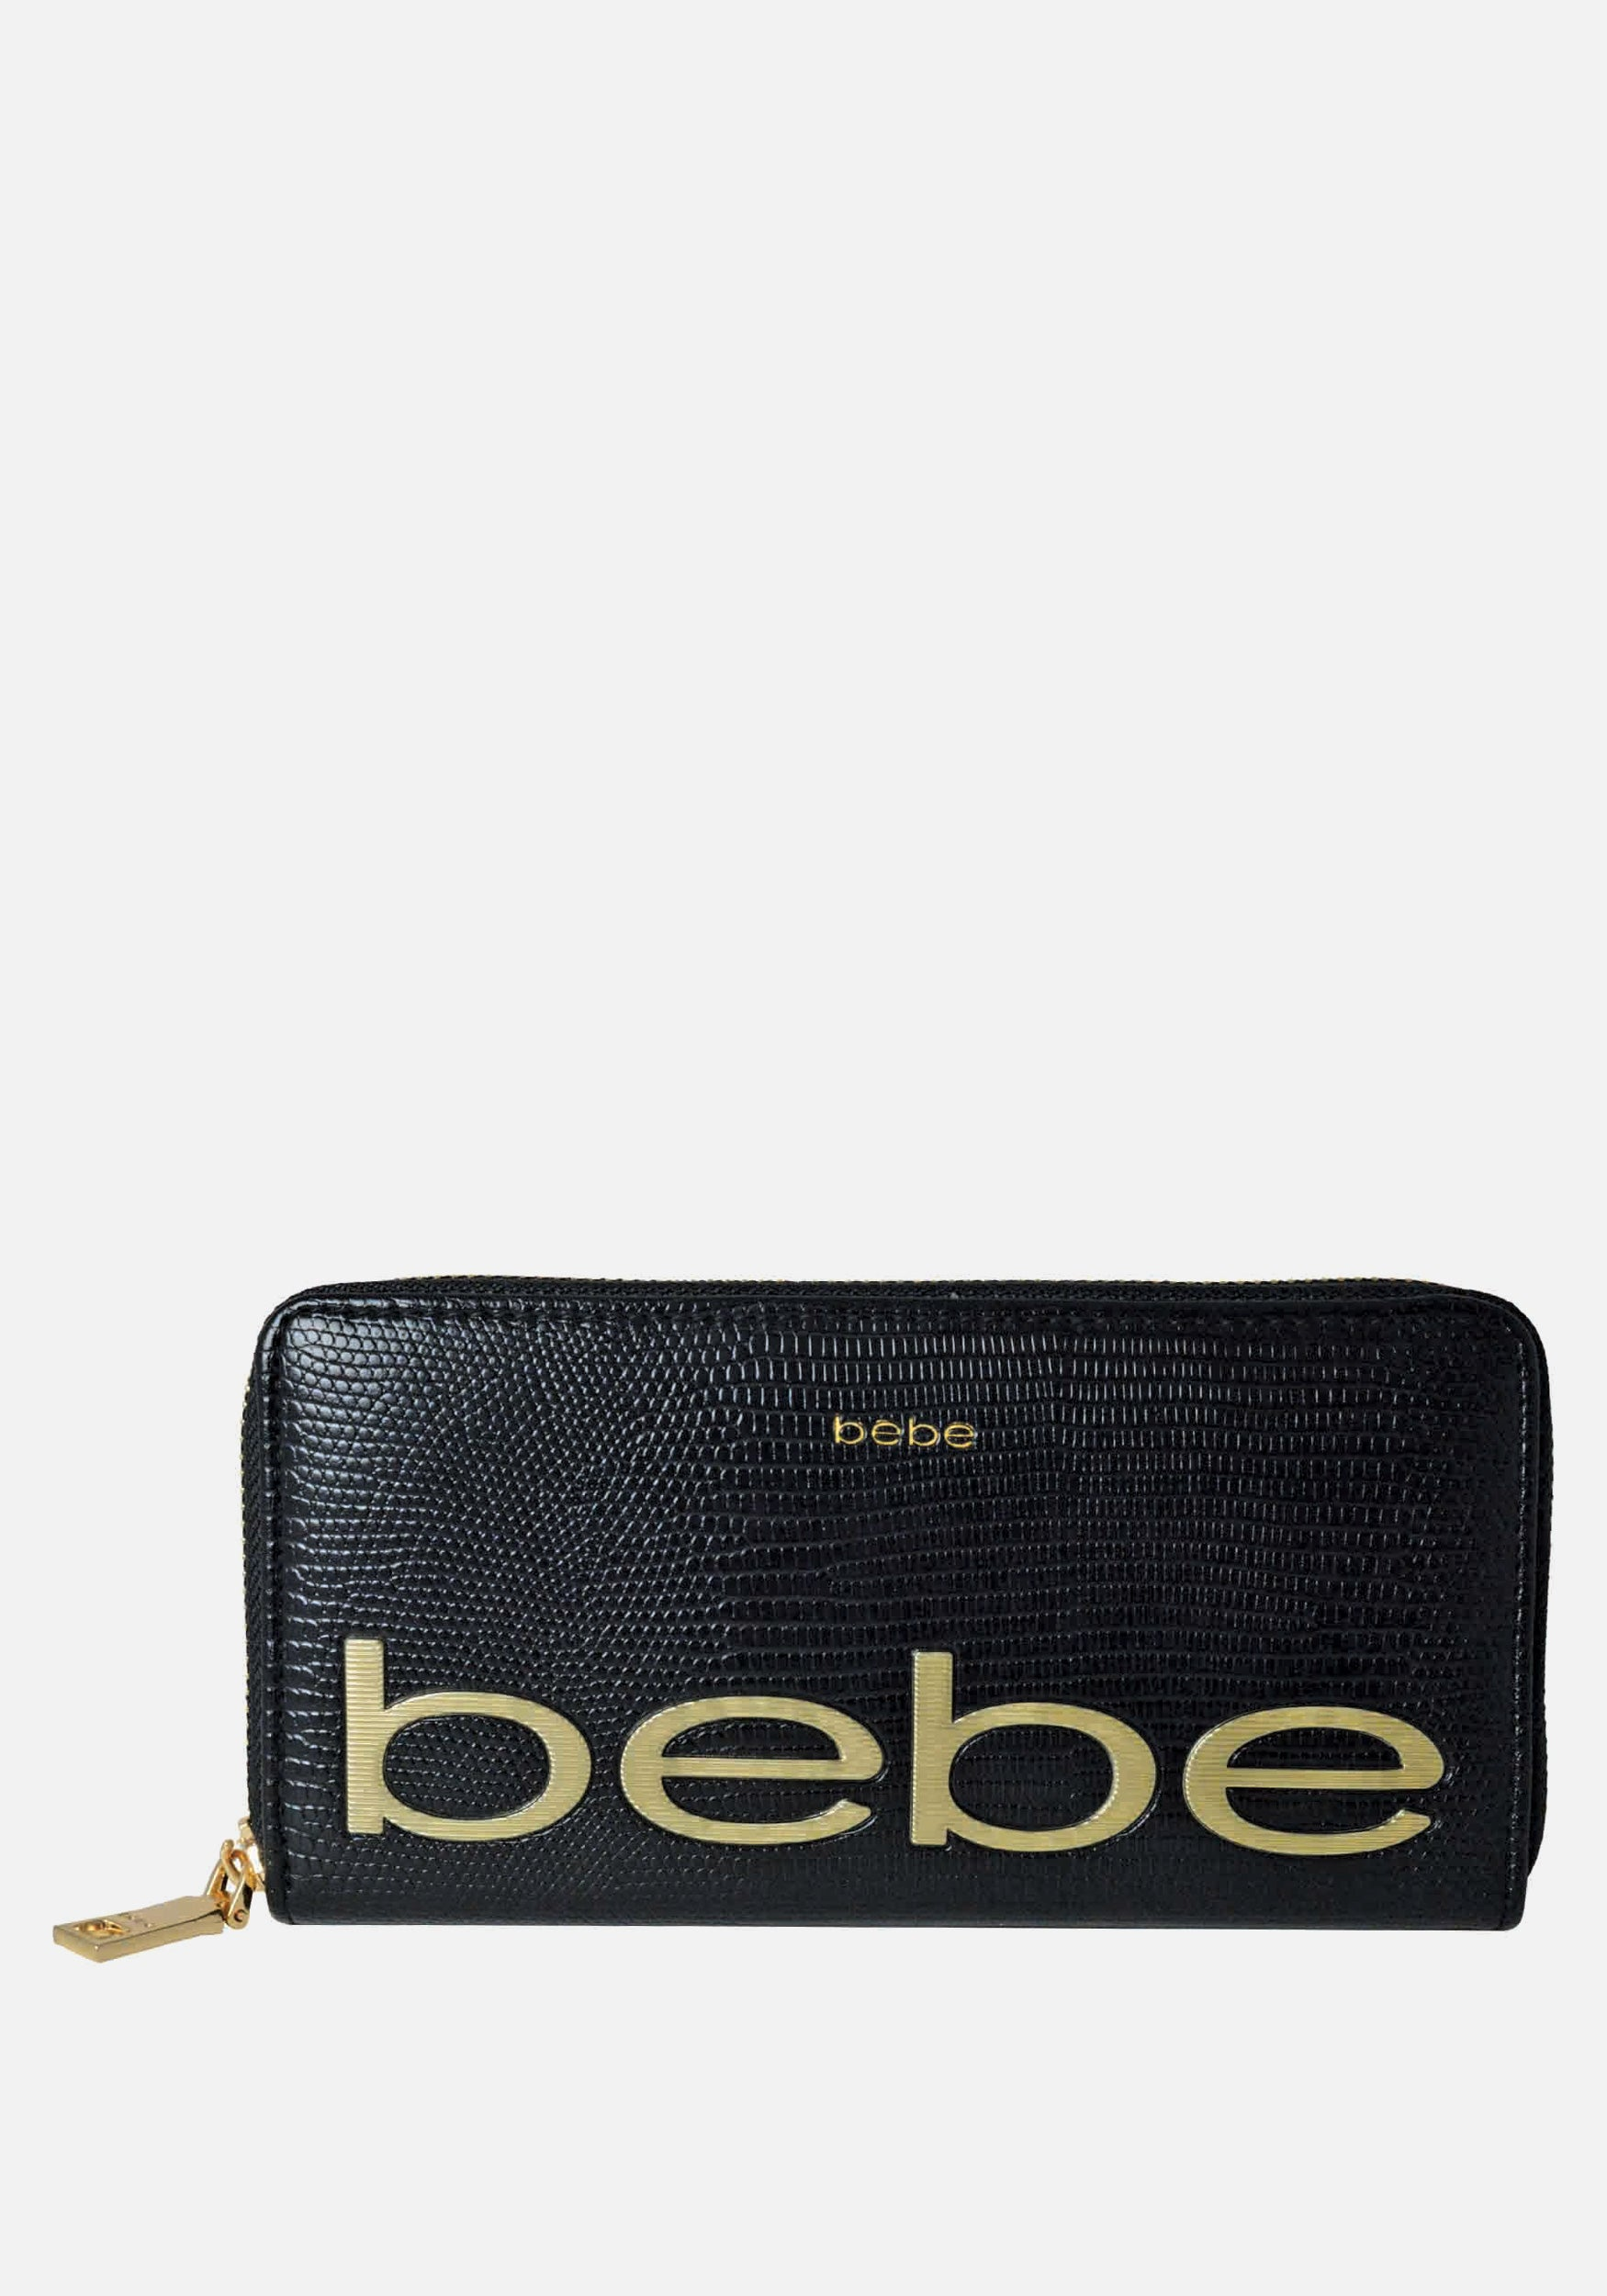 Bebe Women's Fabiola Stamped Lizard Wallet in Black Polyester